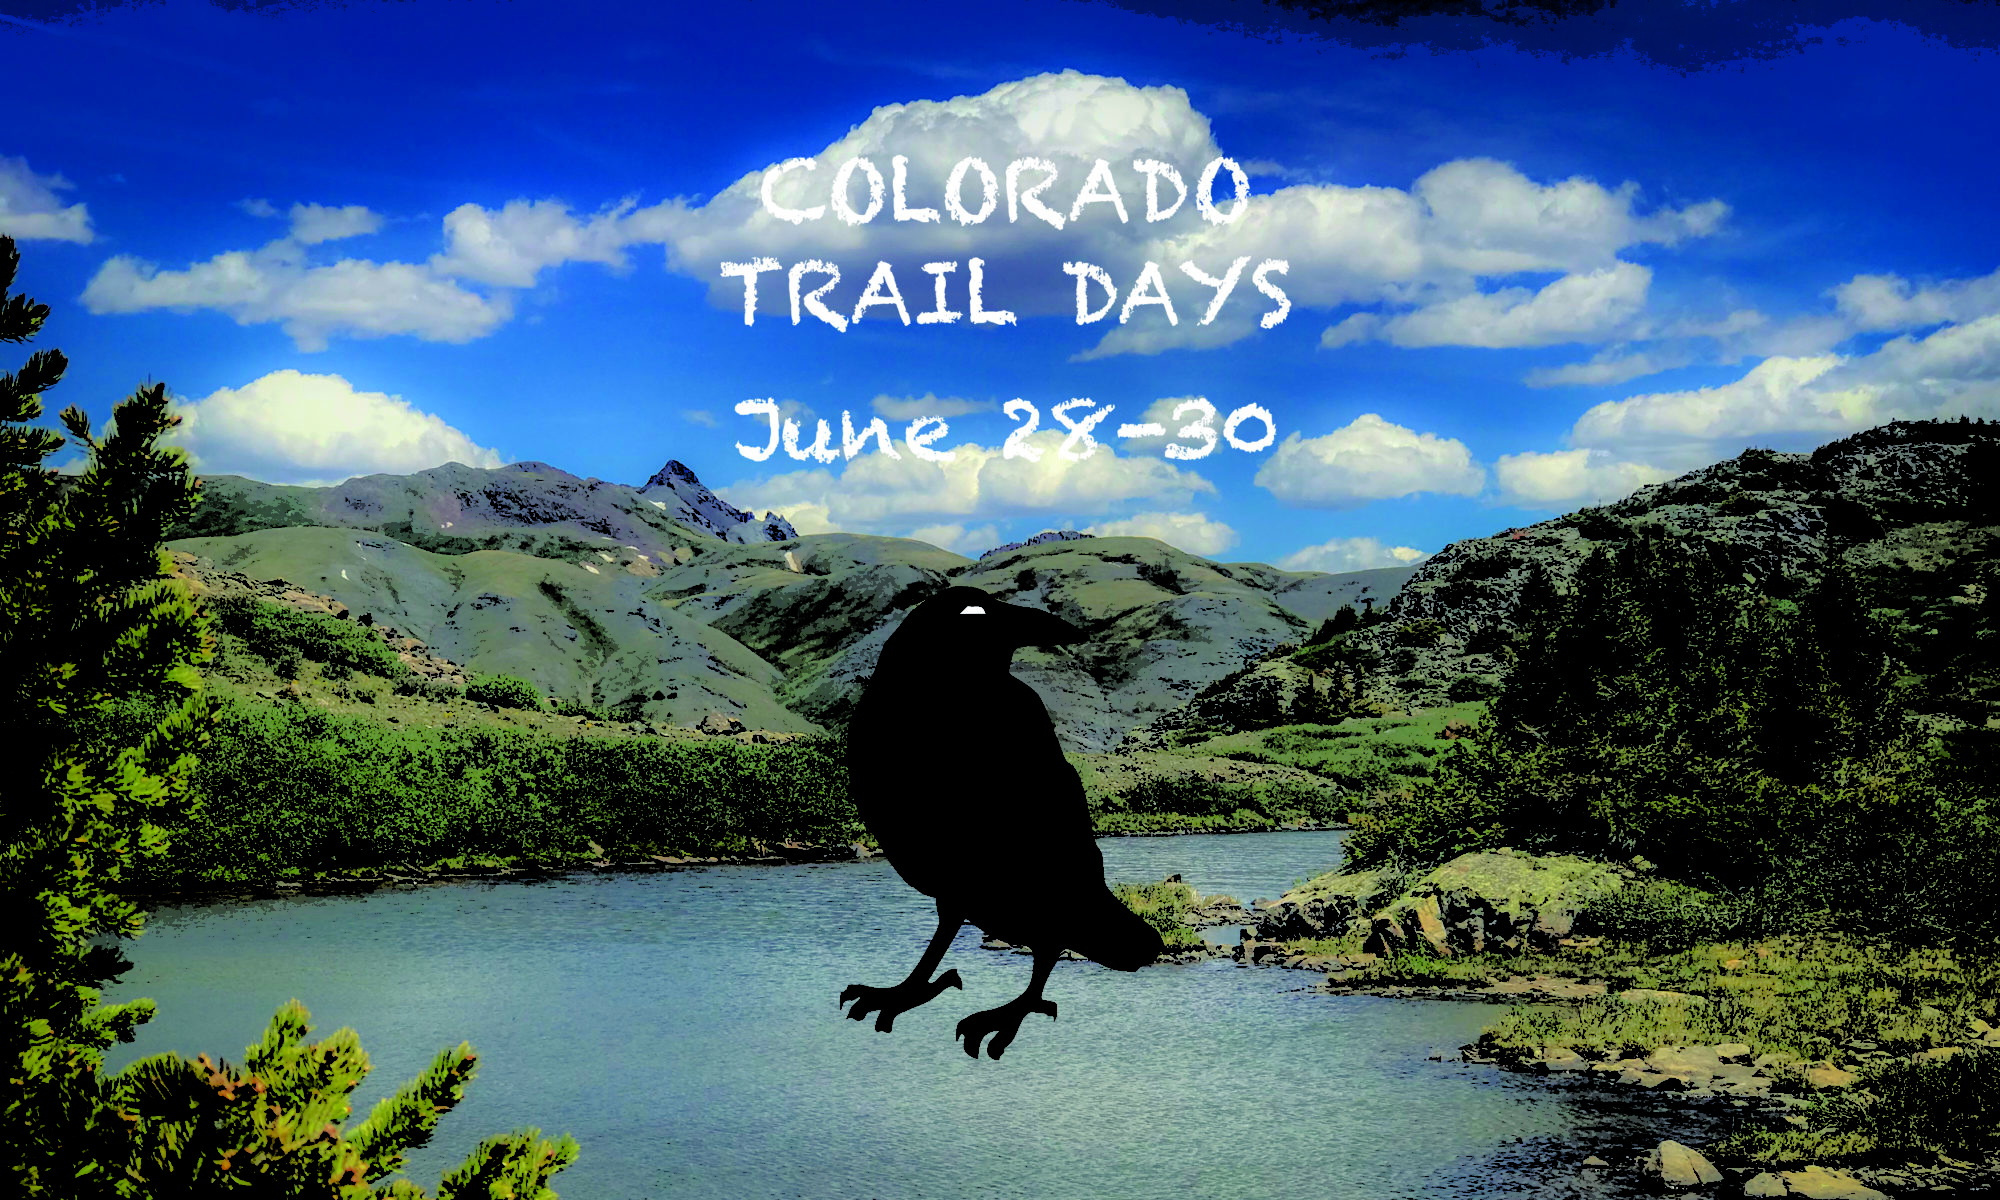 Colorado Trail Days | June 28- June 30 | Durango, CO